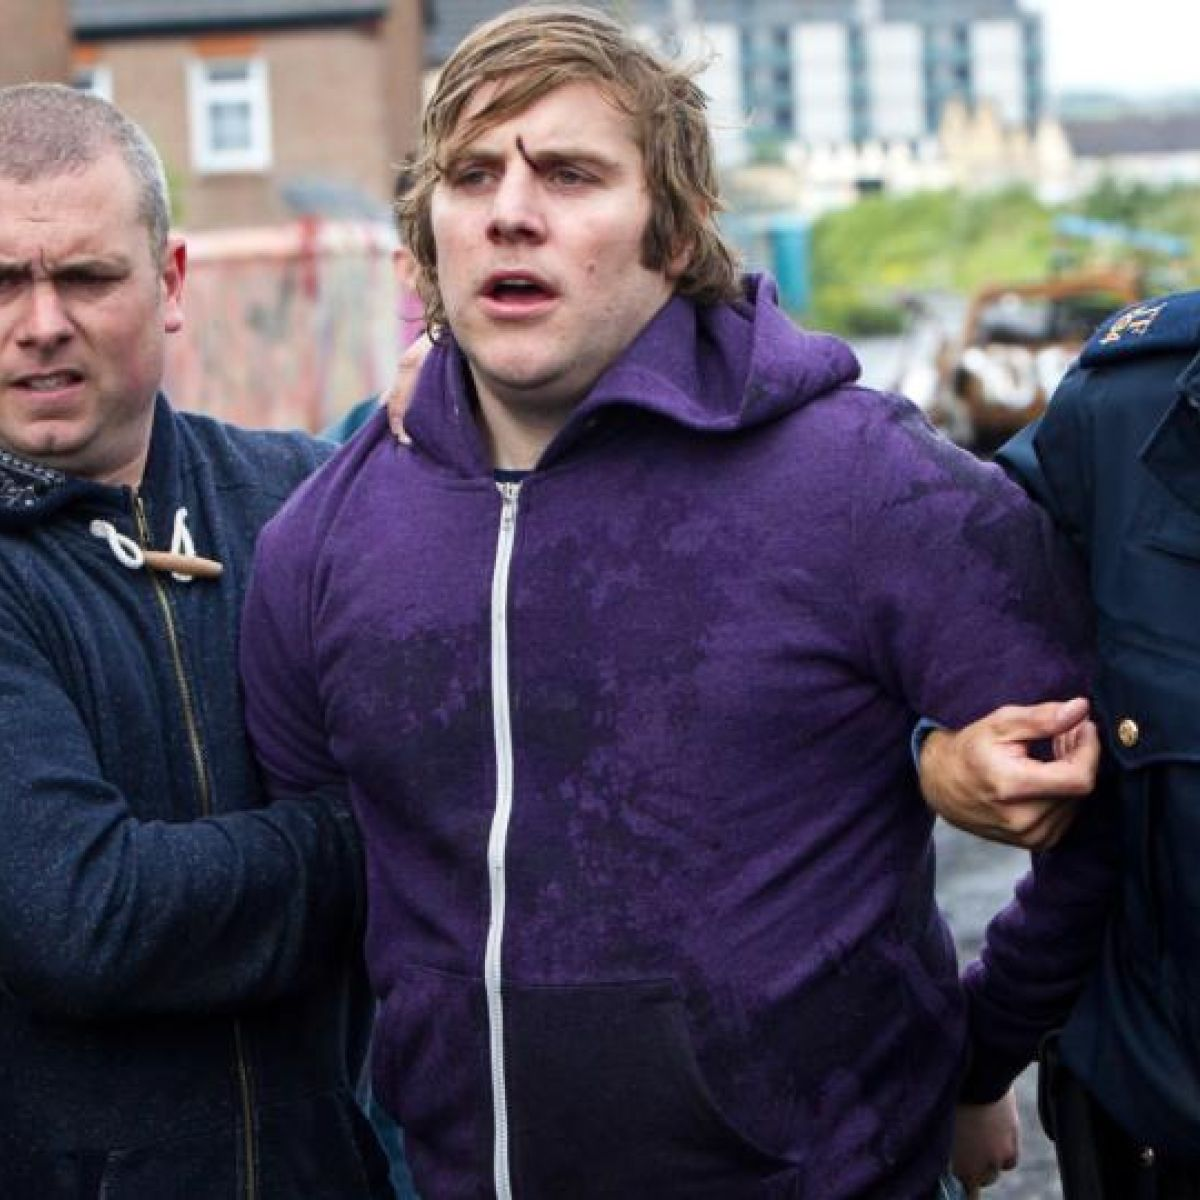 Filming Love/Hate sexual violence 'tough', says Peter Coonan